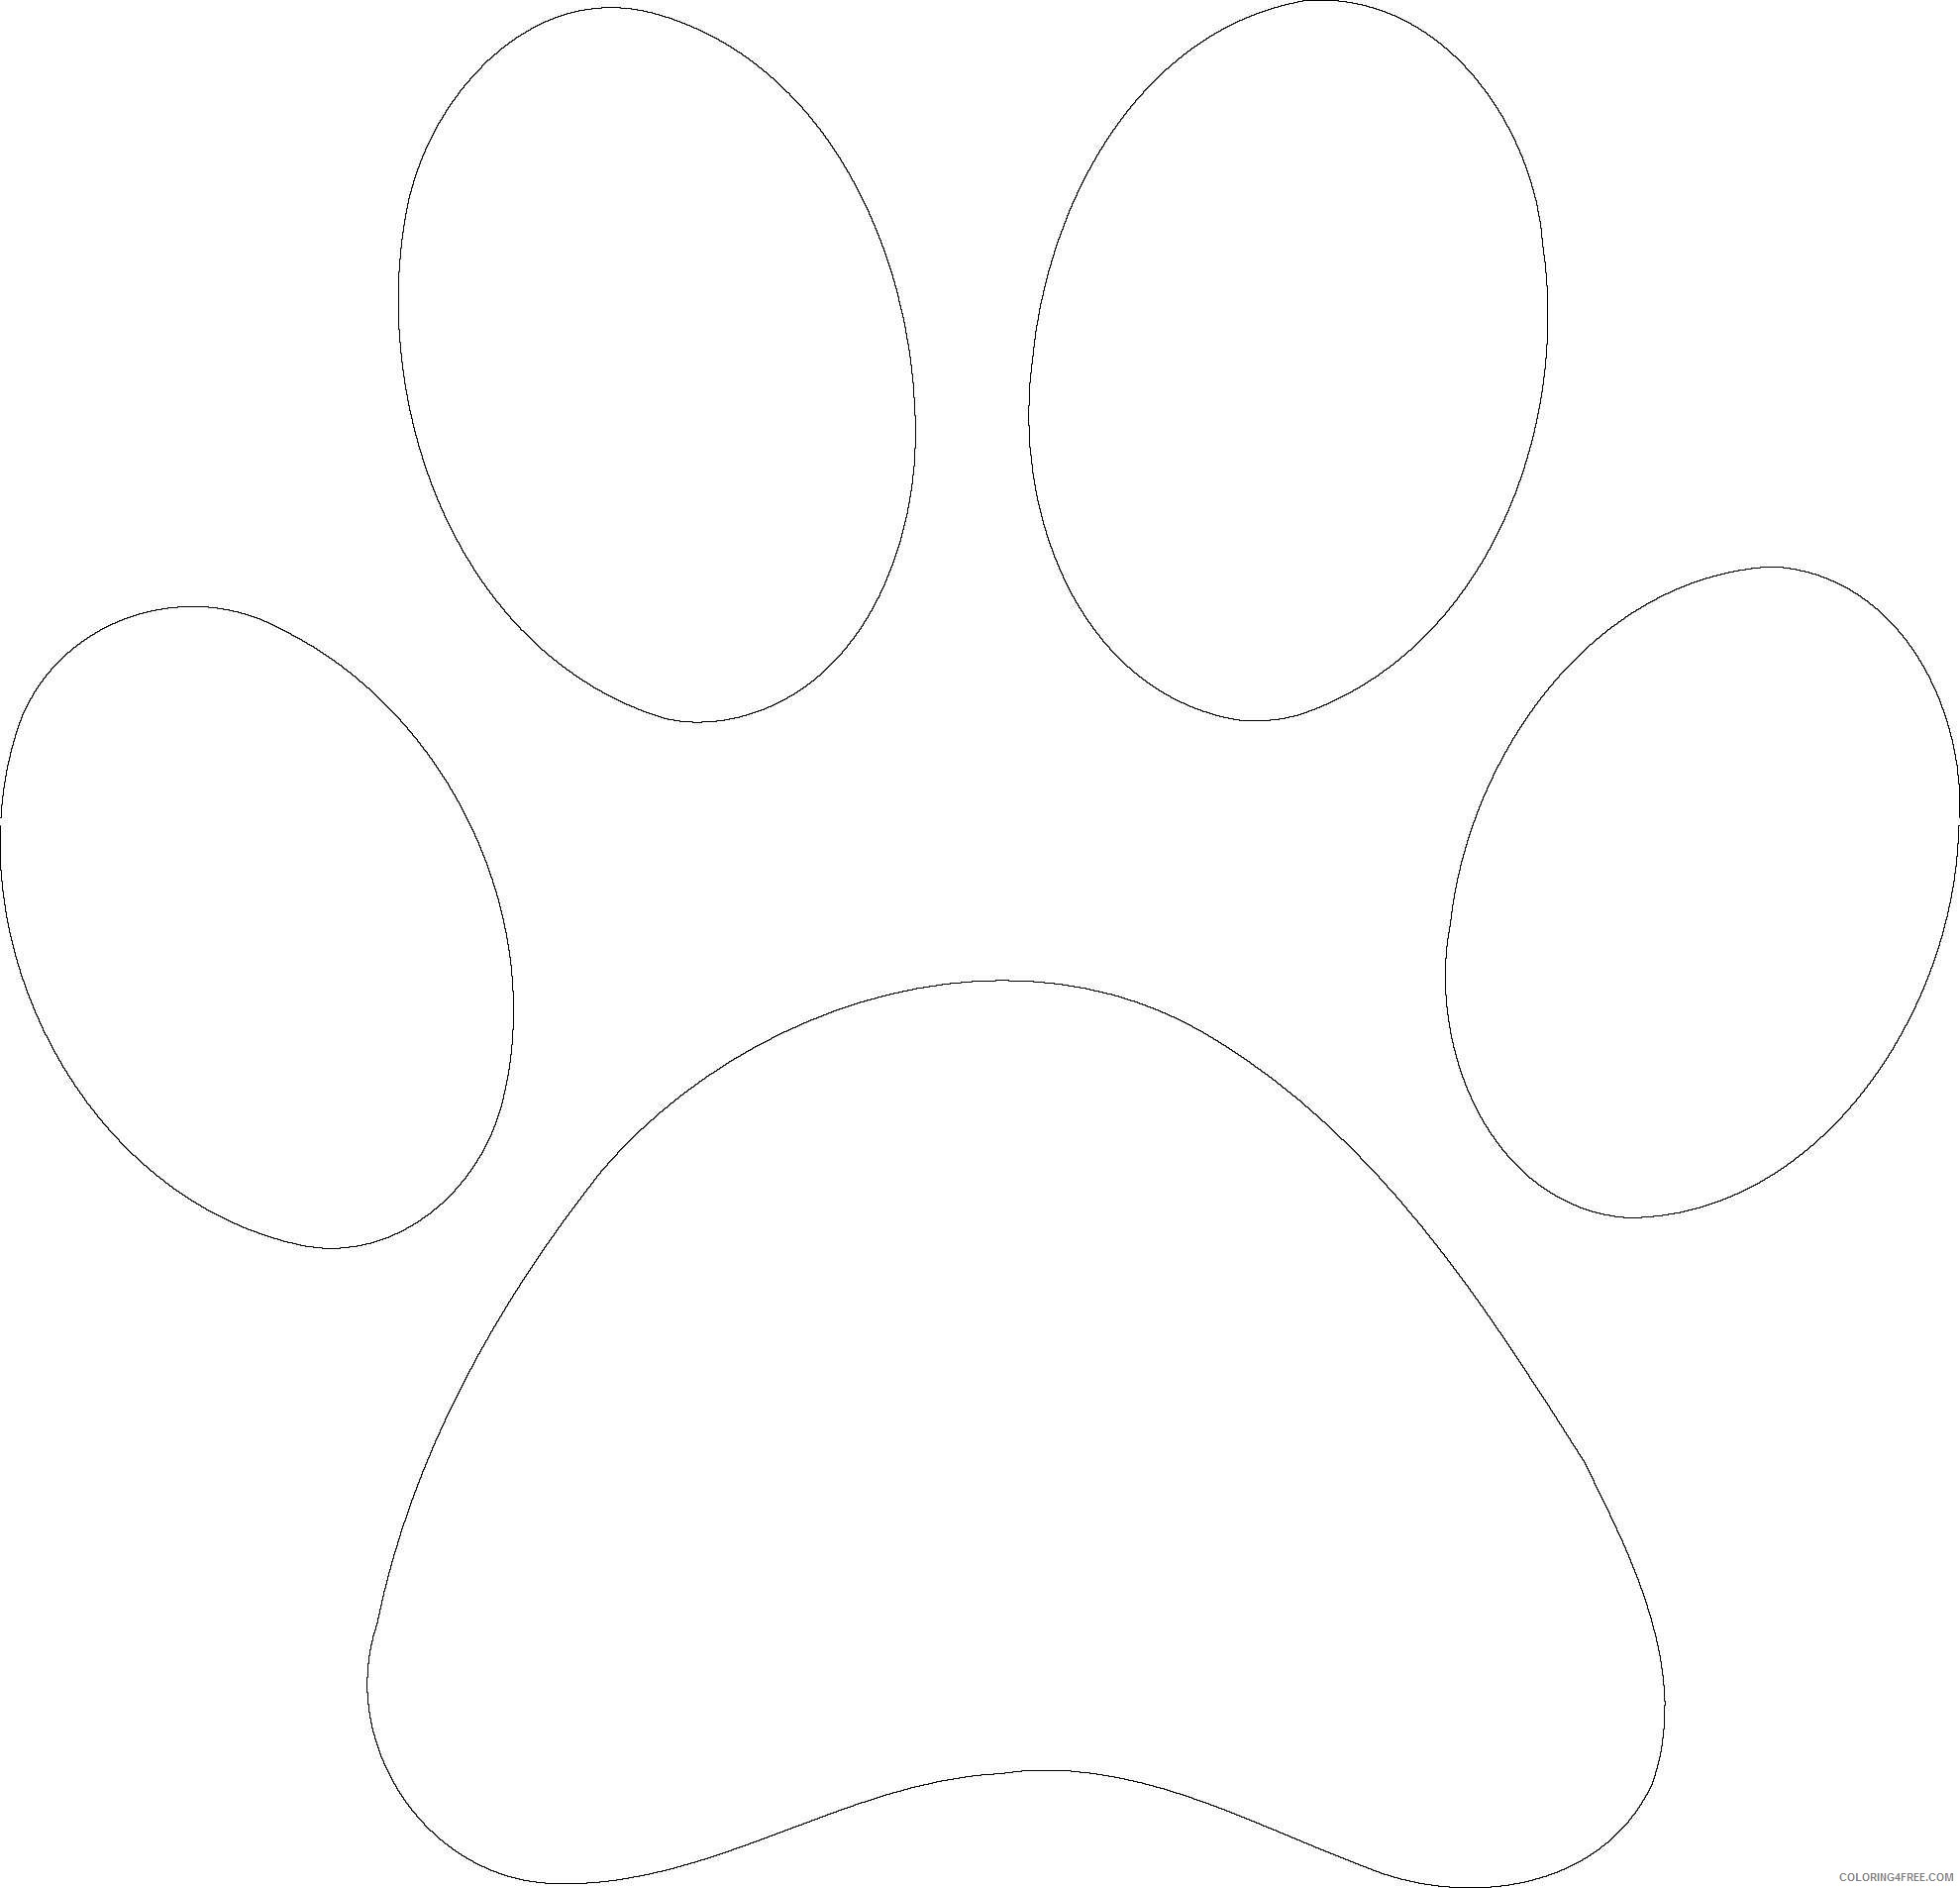 displaying for bear tracks F0GHmK coloring